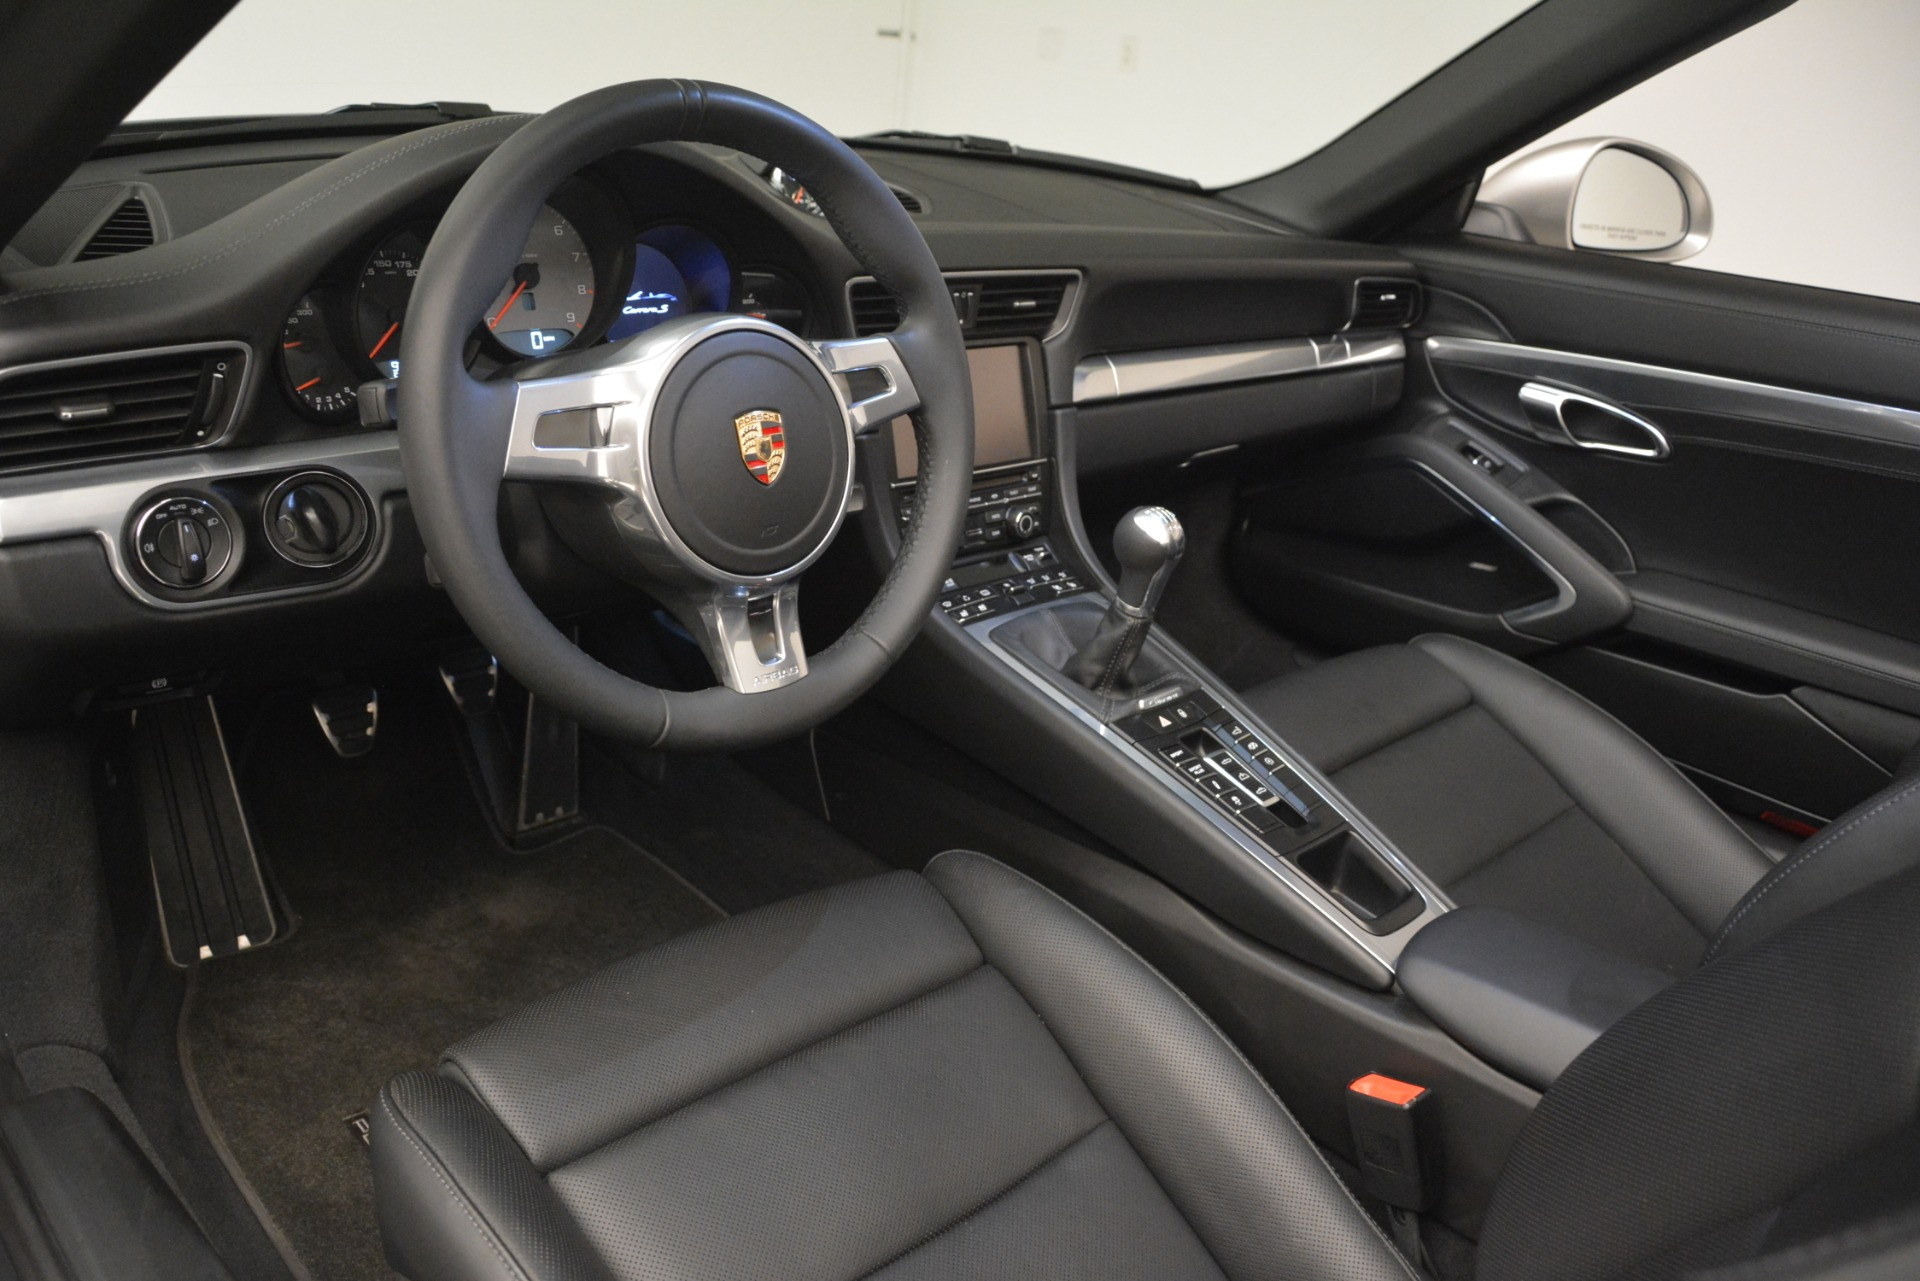 Used 2013 Porsche 911 Carrera S For Sale In Greenwich, CT 3107_p19